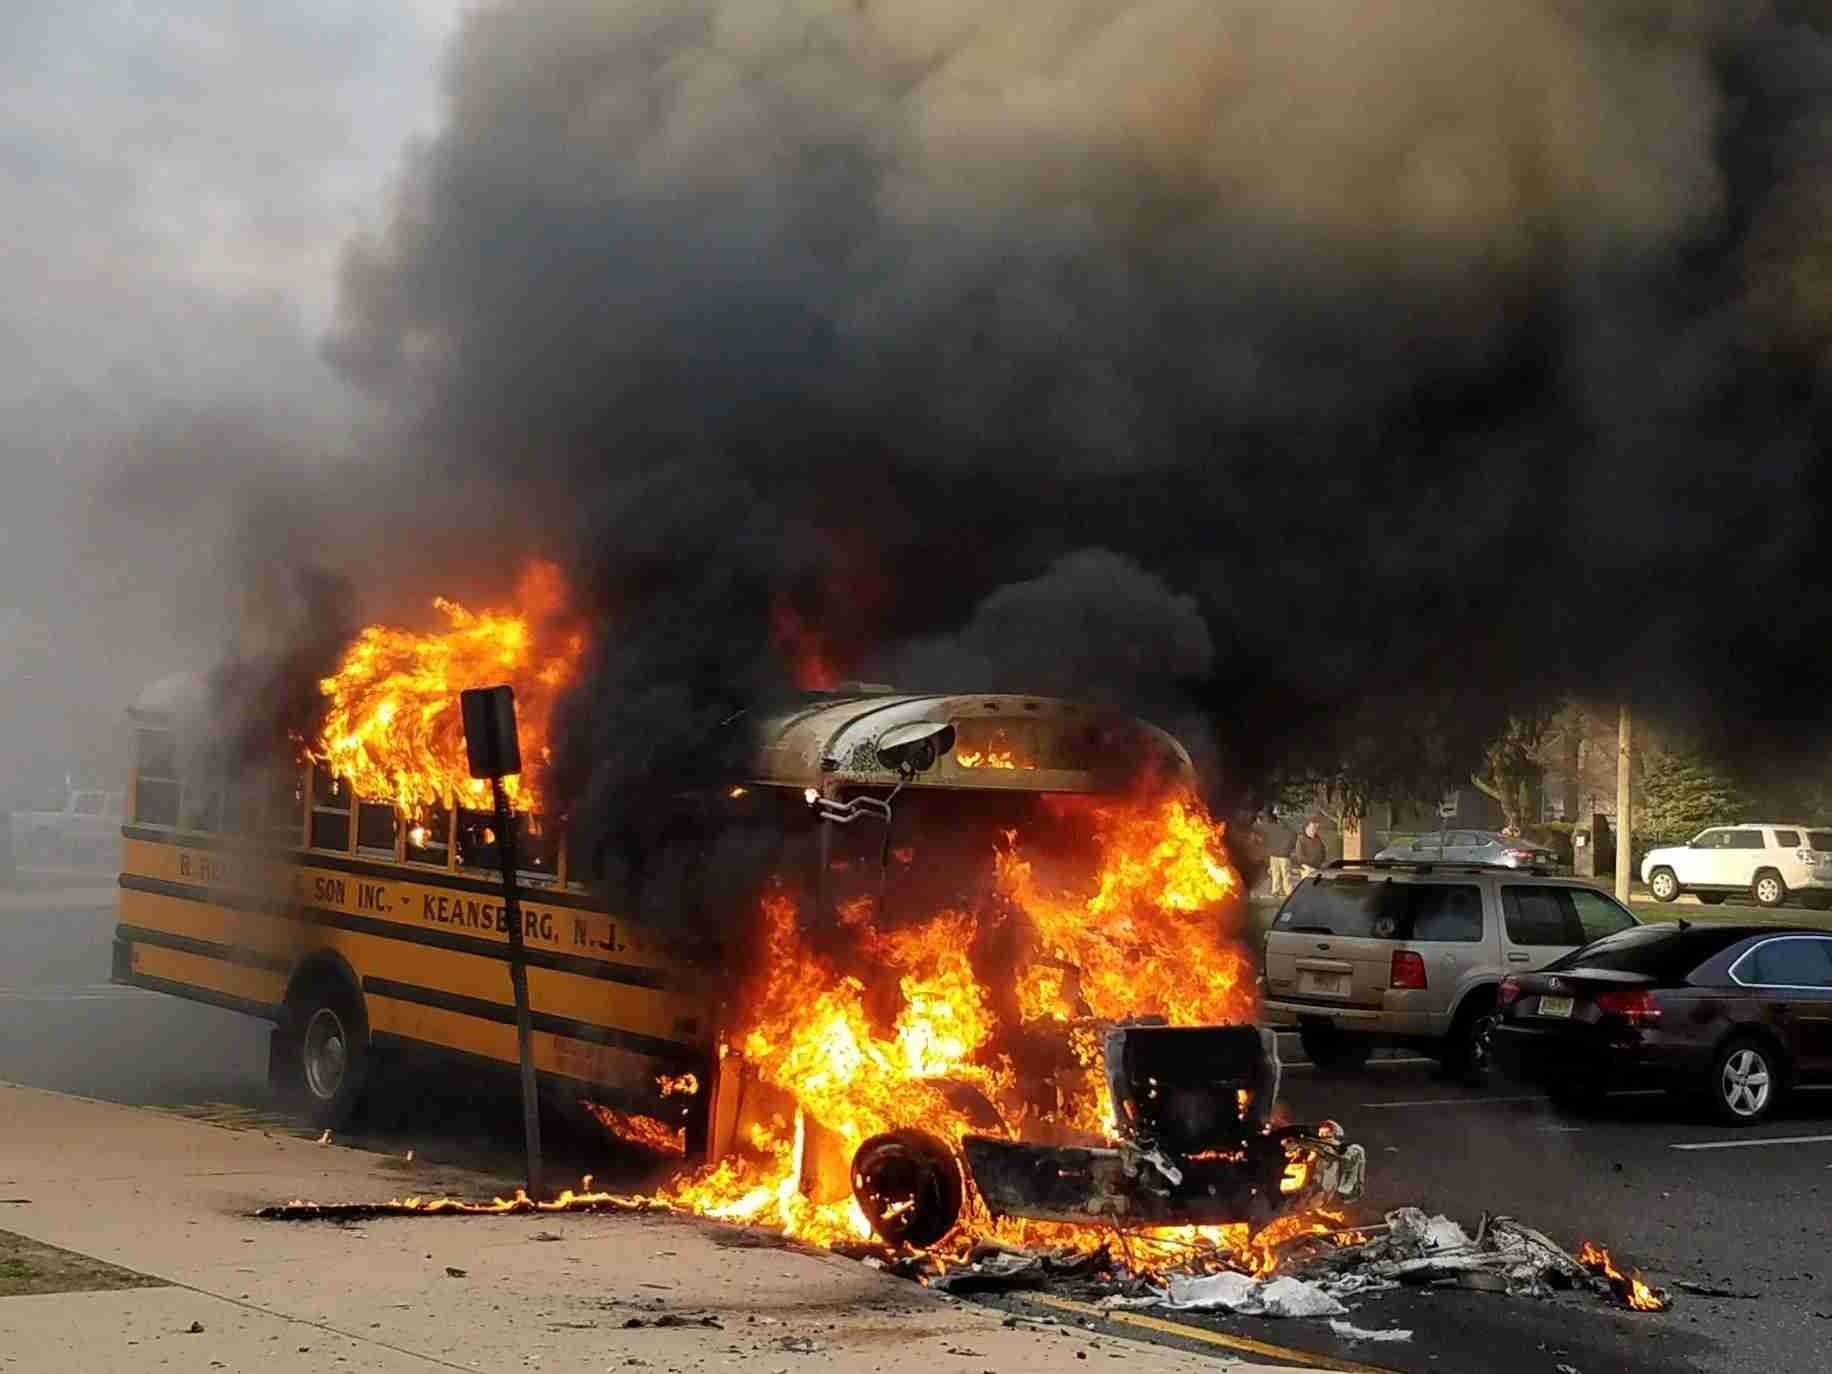 Middletown High School north bus fire